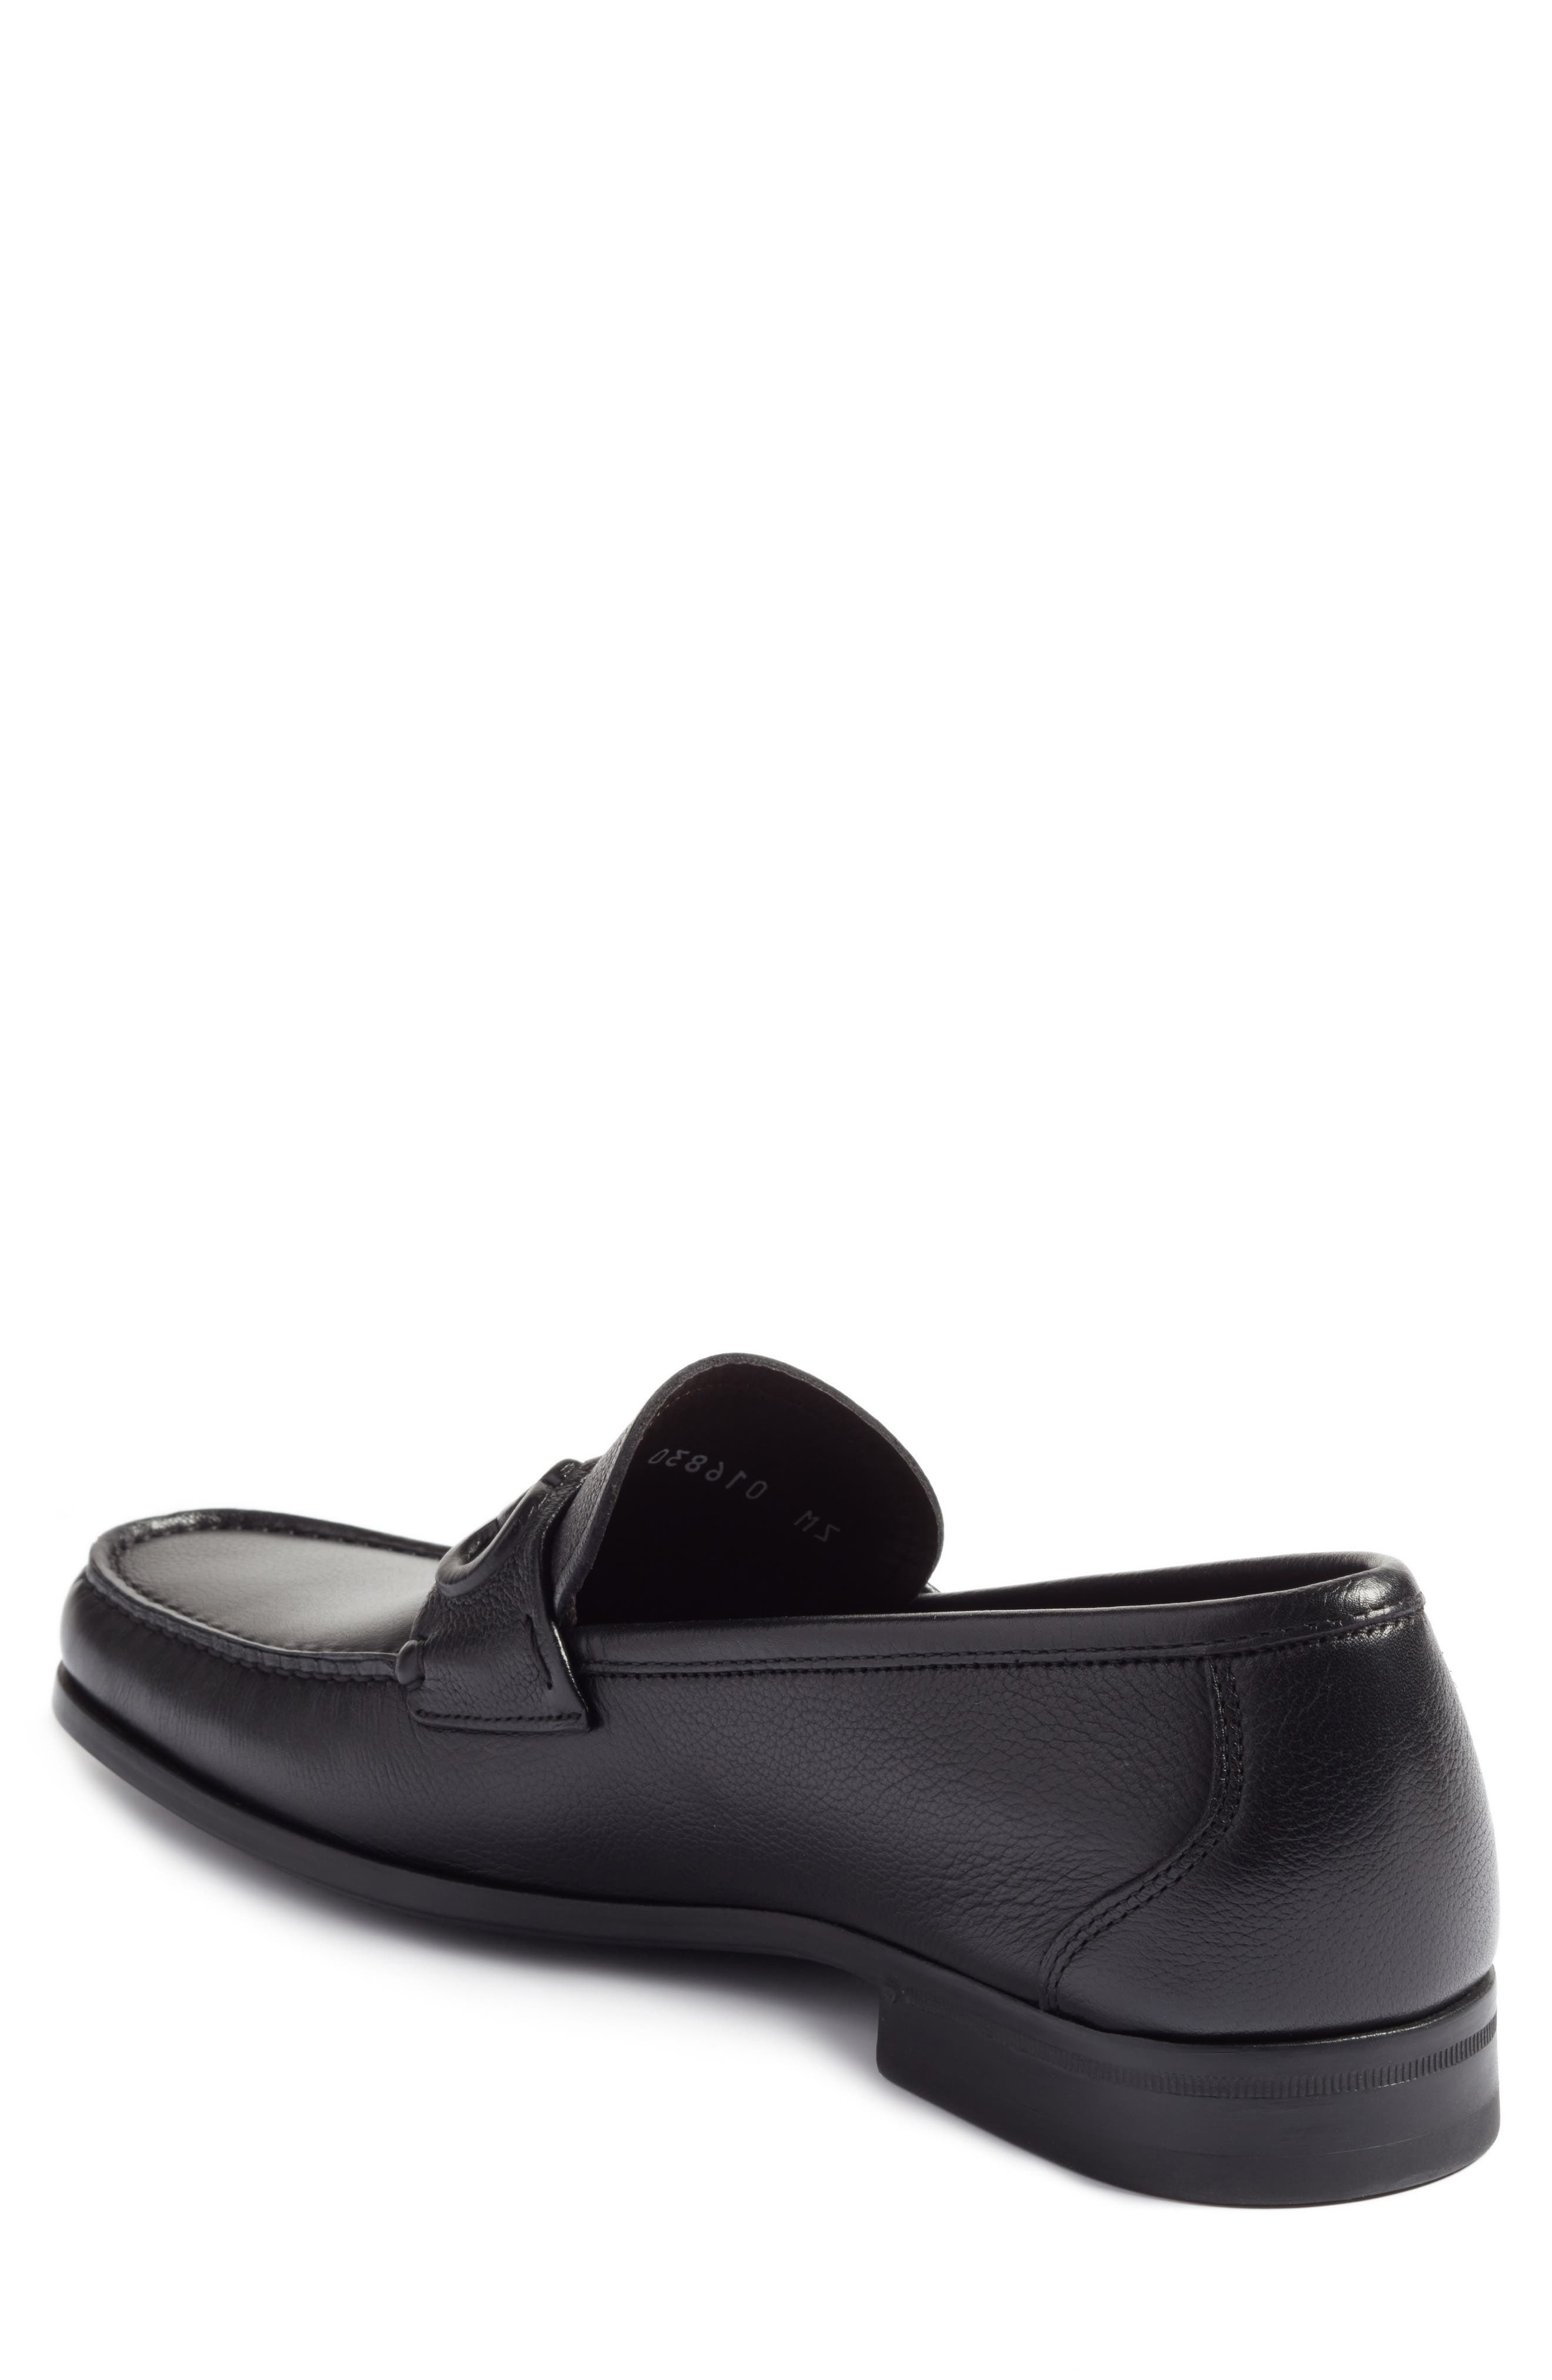 Bit Loafer,                             Alternate thumbnail 2, color,                             Nero Leather